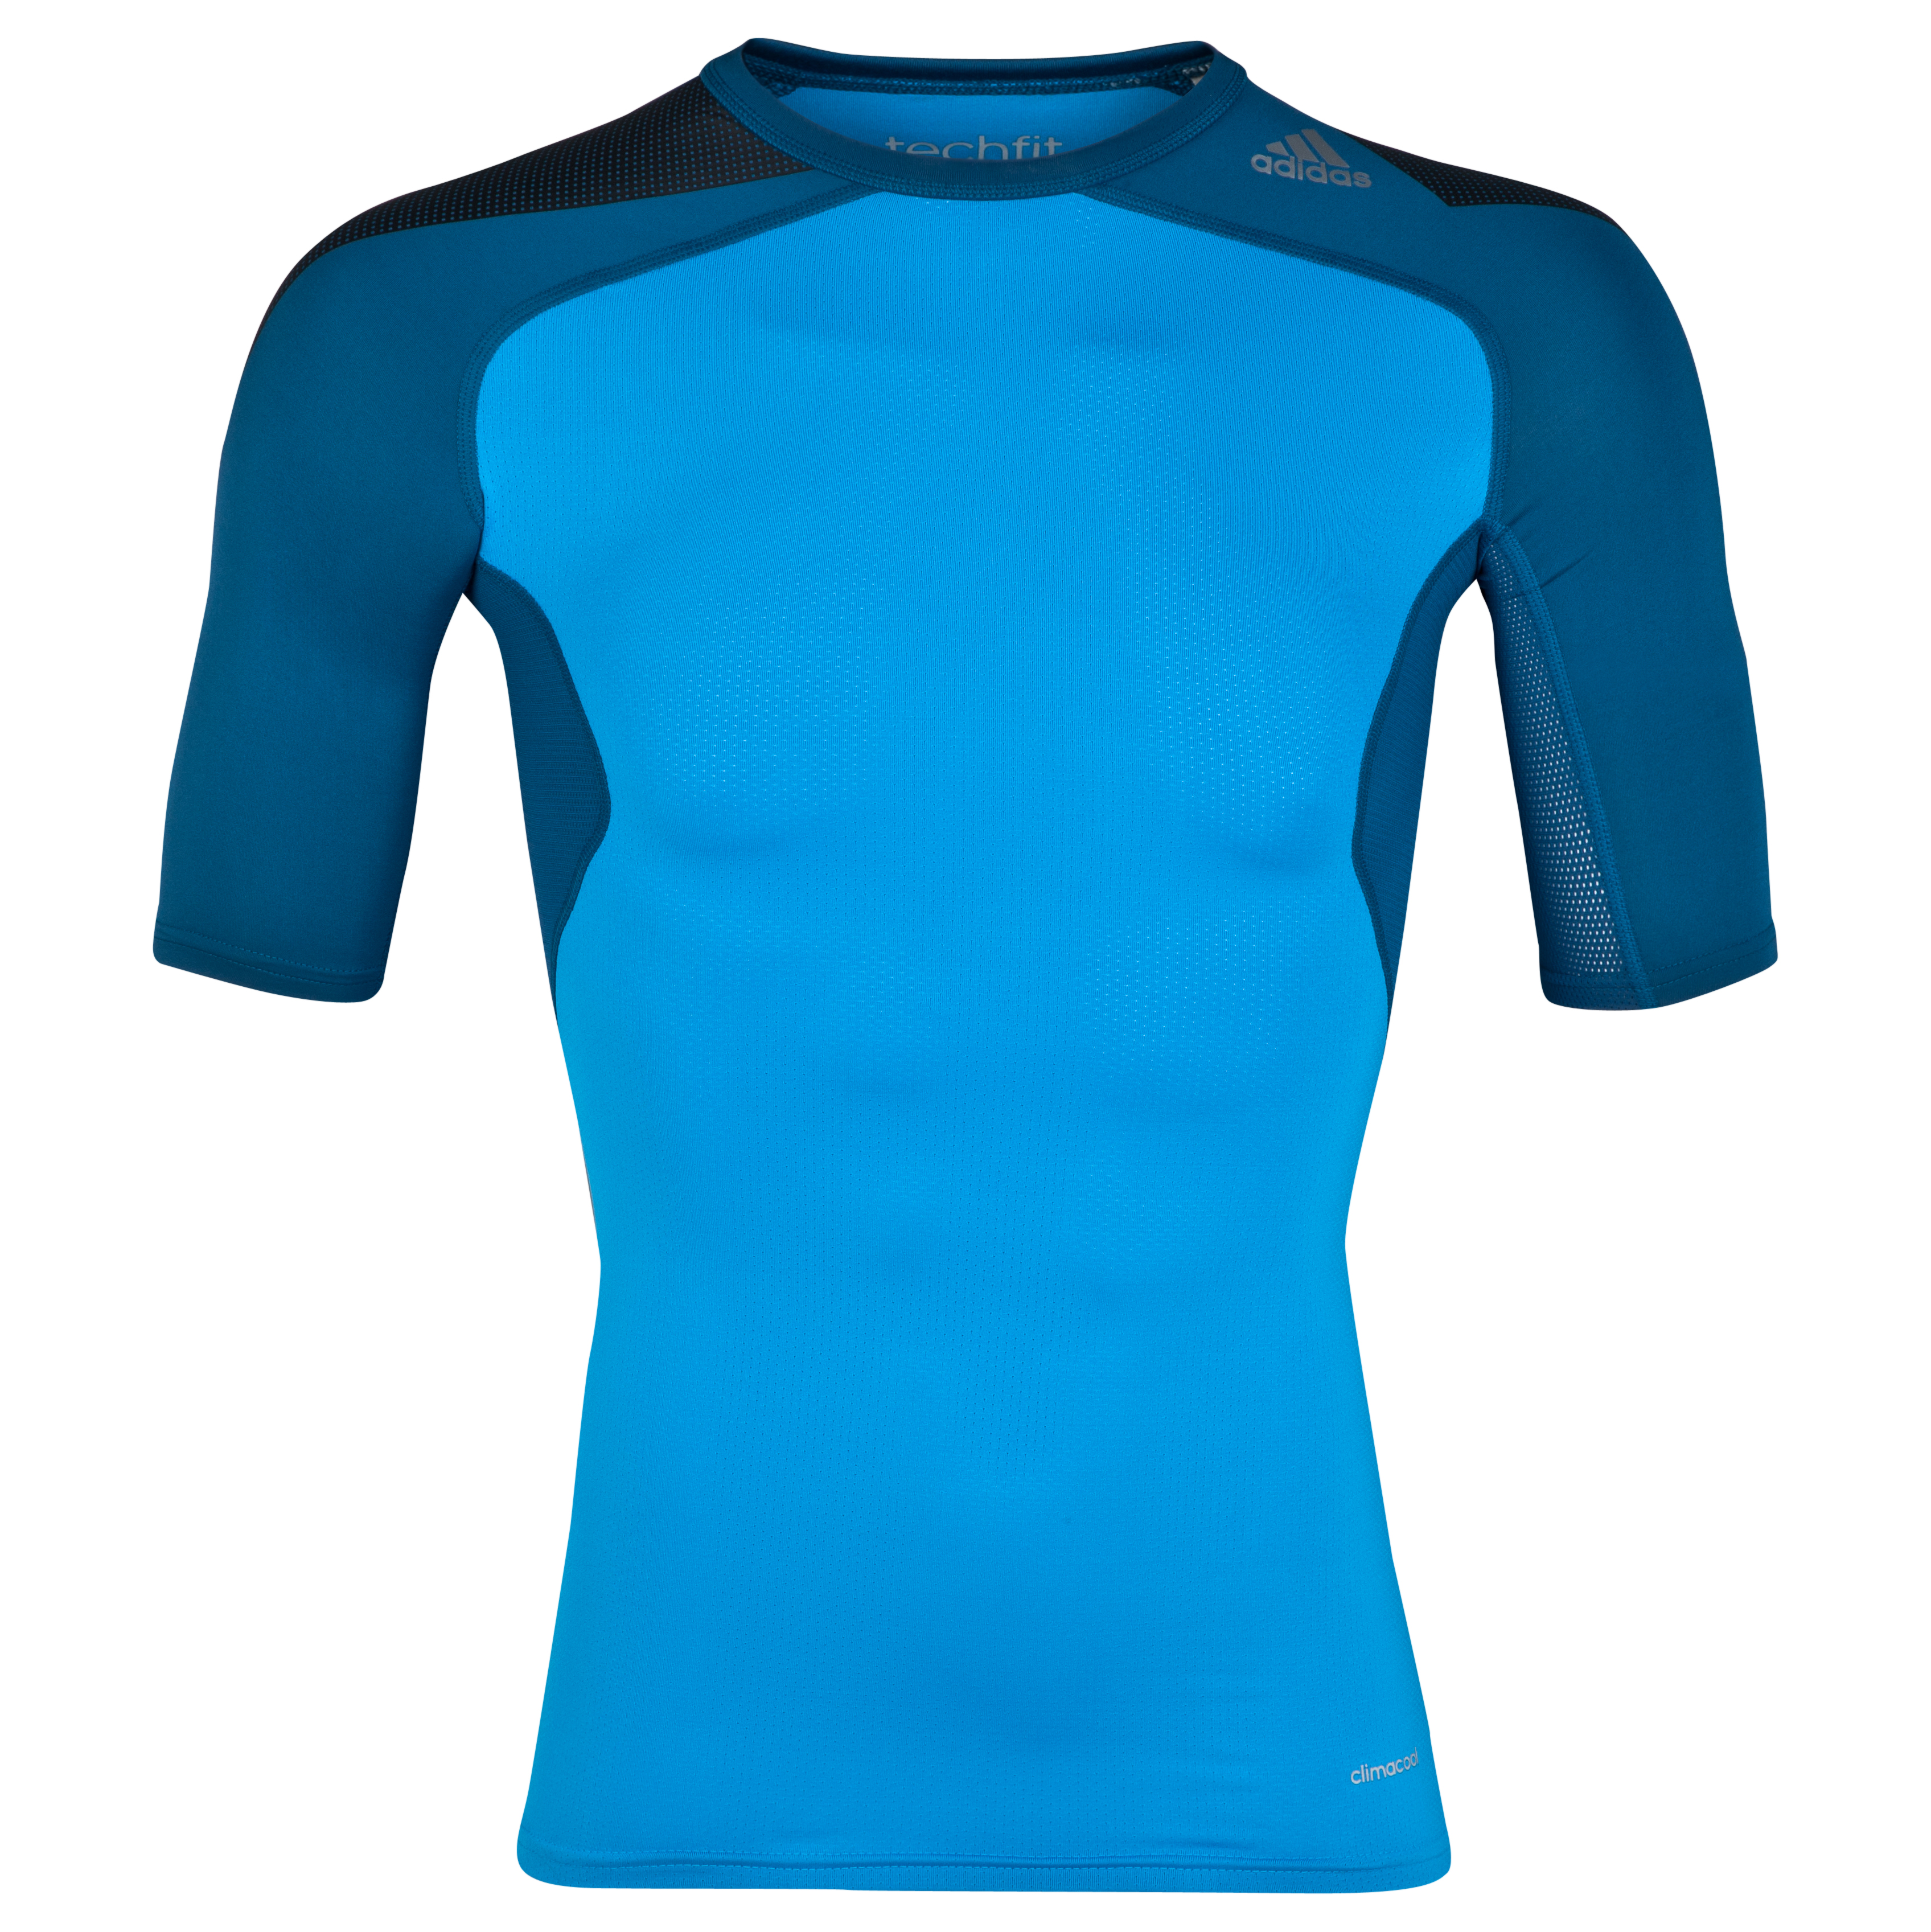 Adidas TechFit Cool Base Layer Top Blue